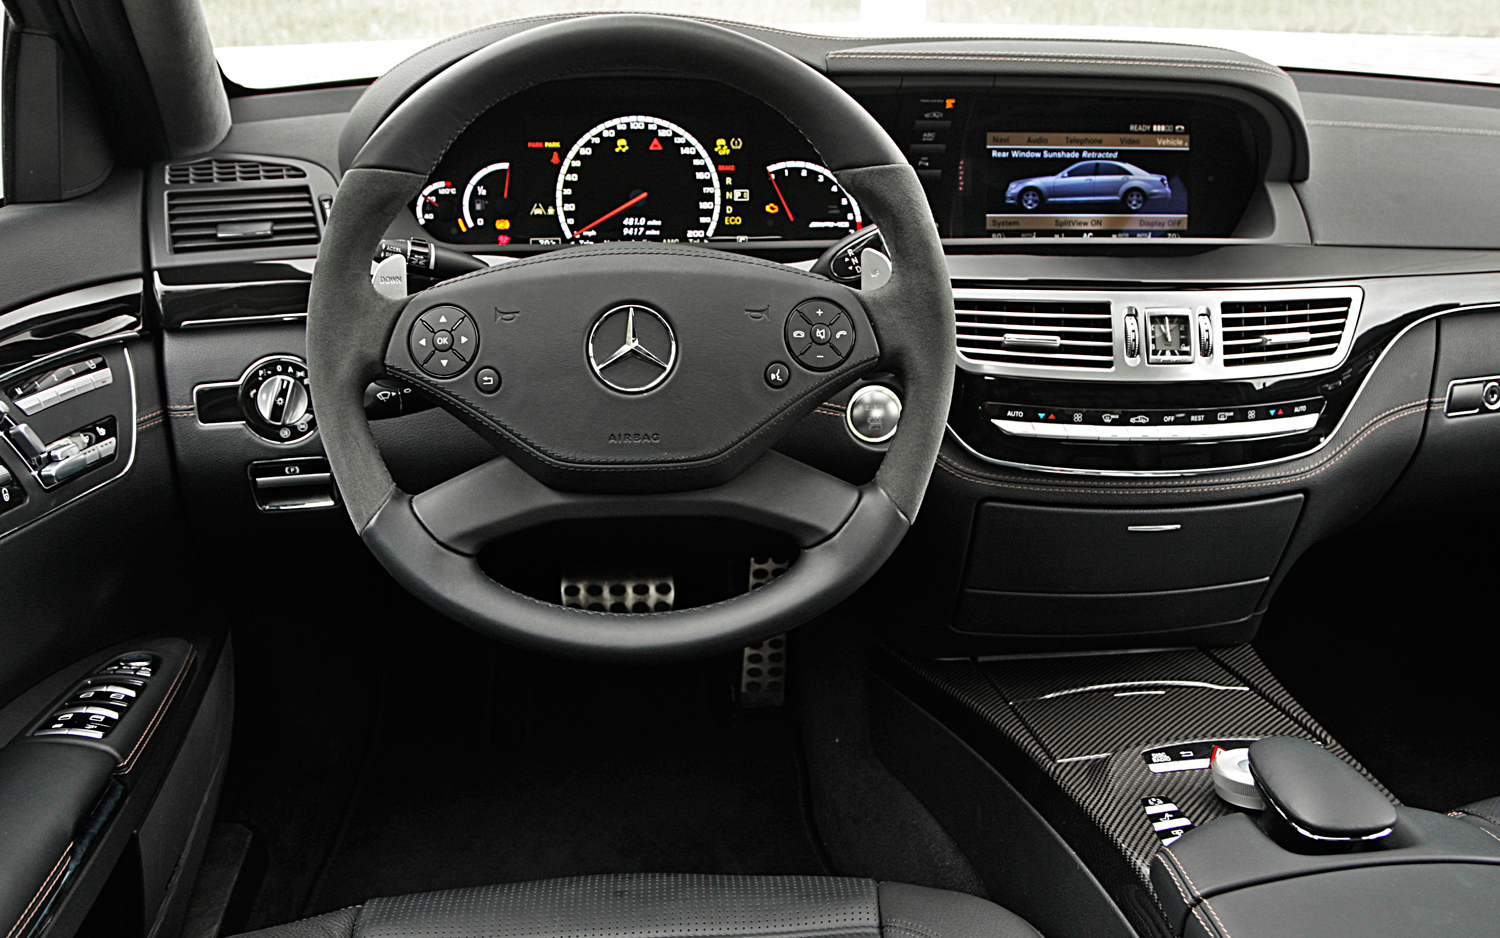 Mercedes Benz S 63 Amg Technical Details History Photos